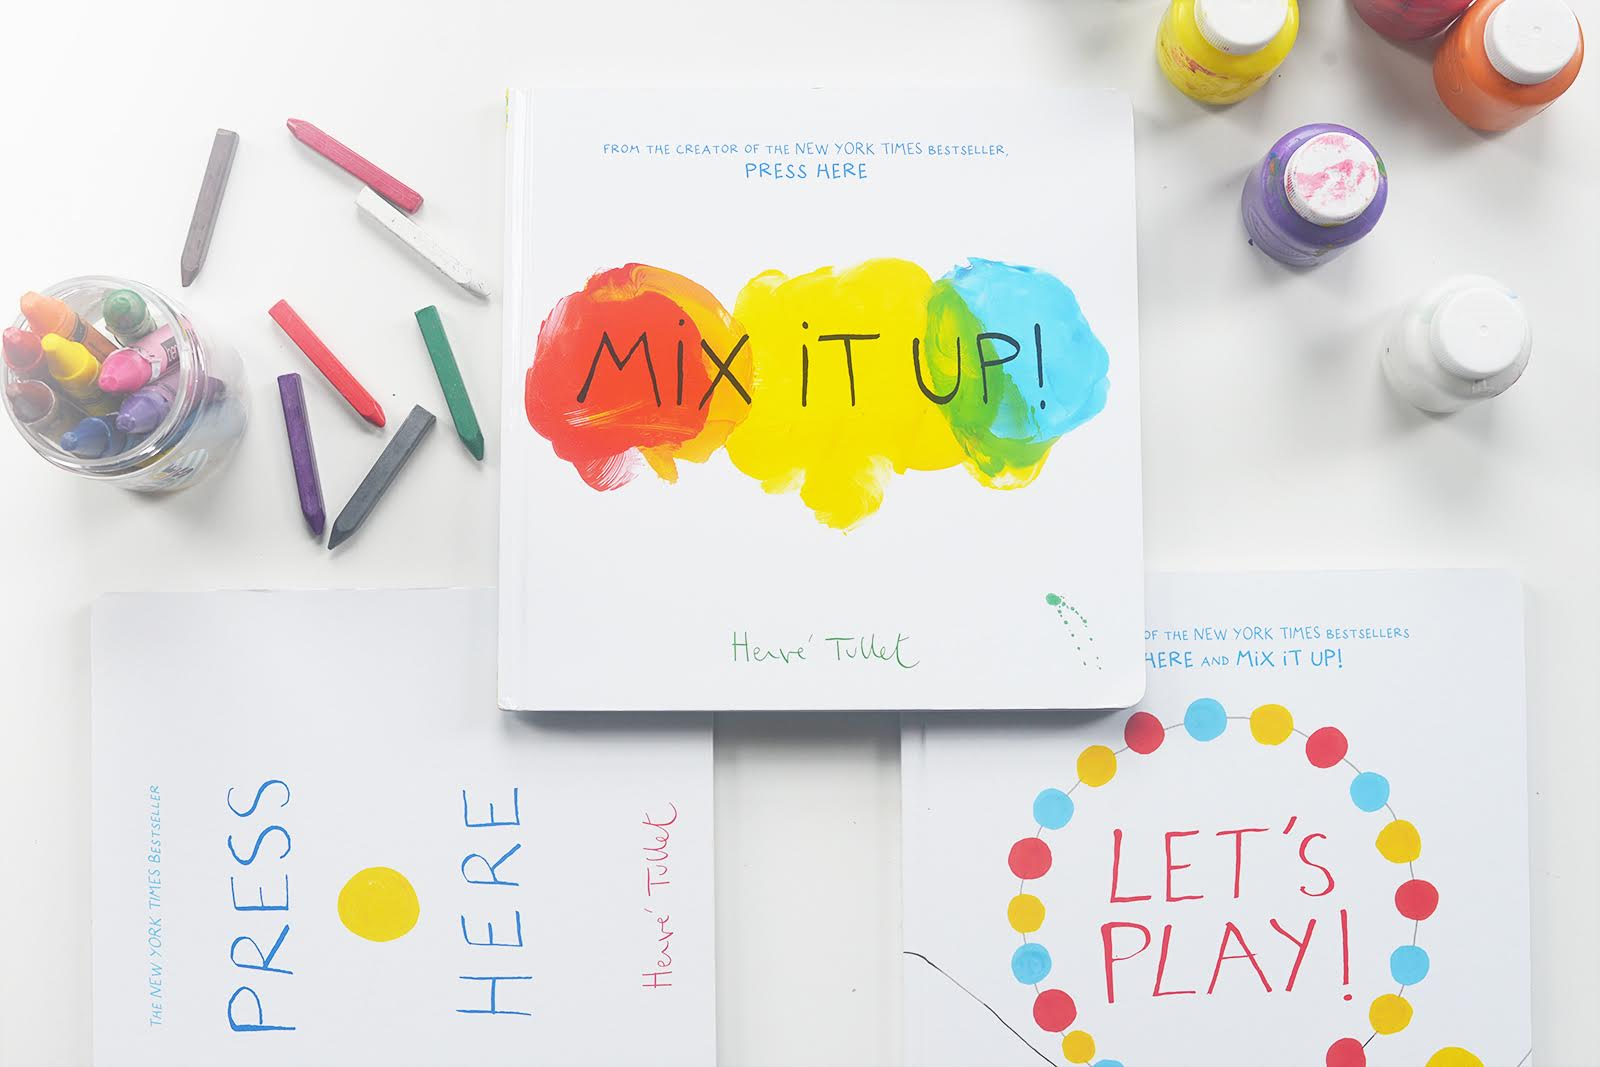 Herve Tullet Books - Mix It Up...